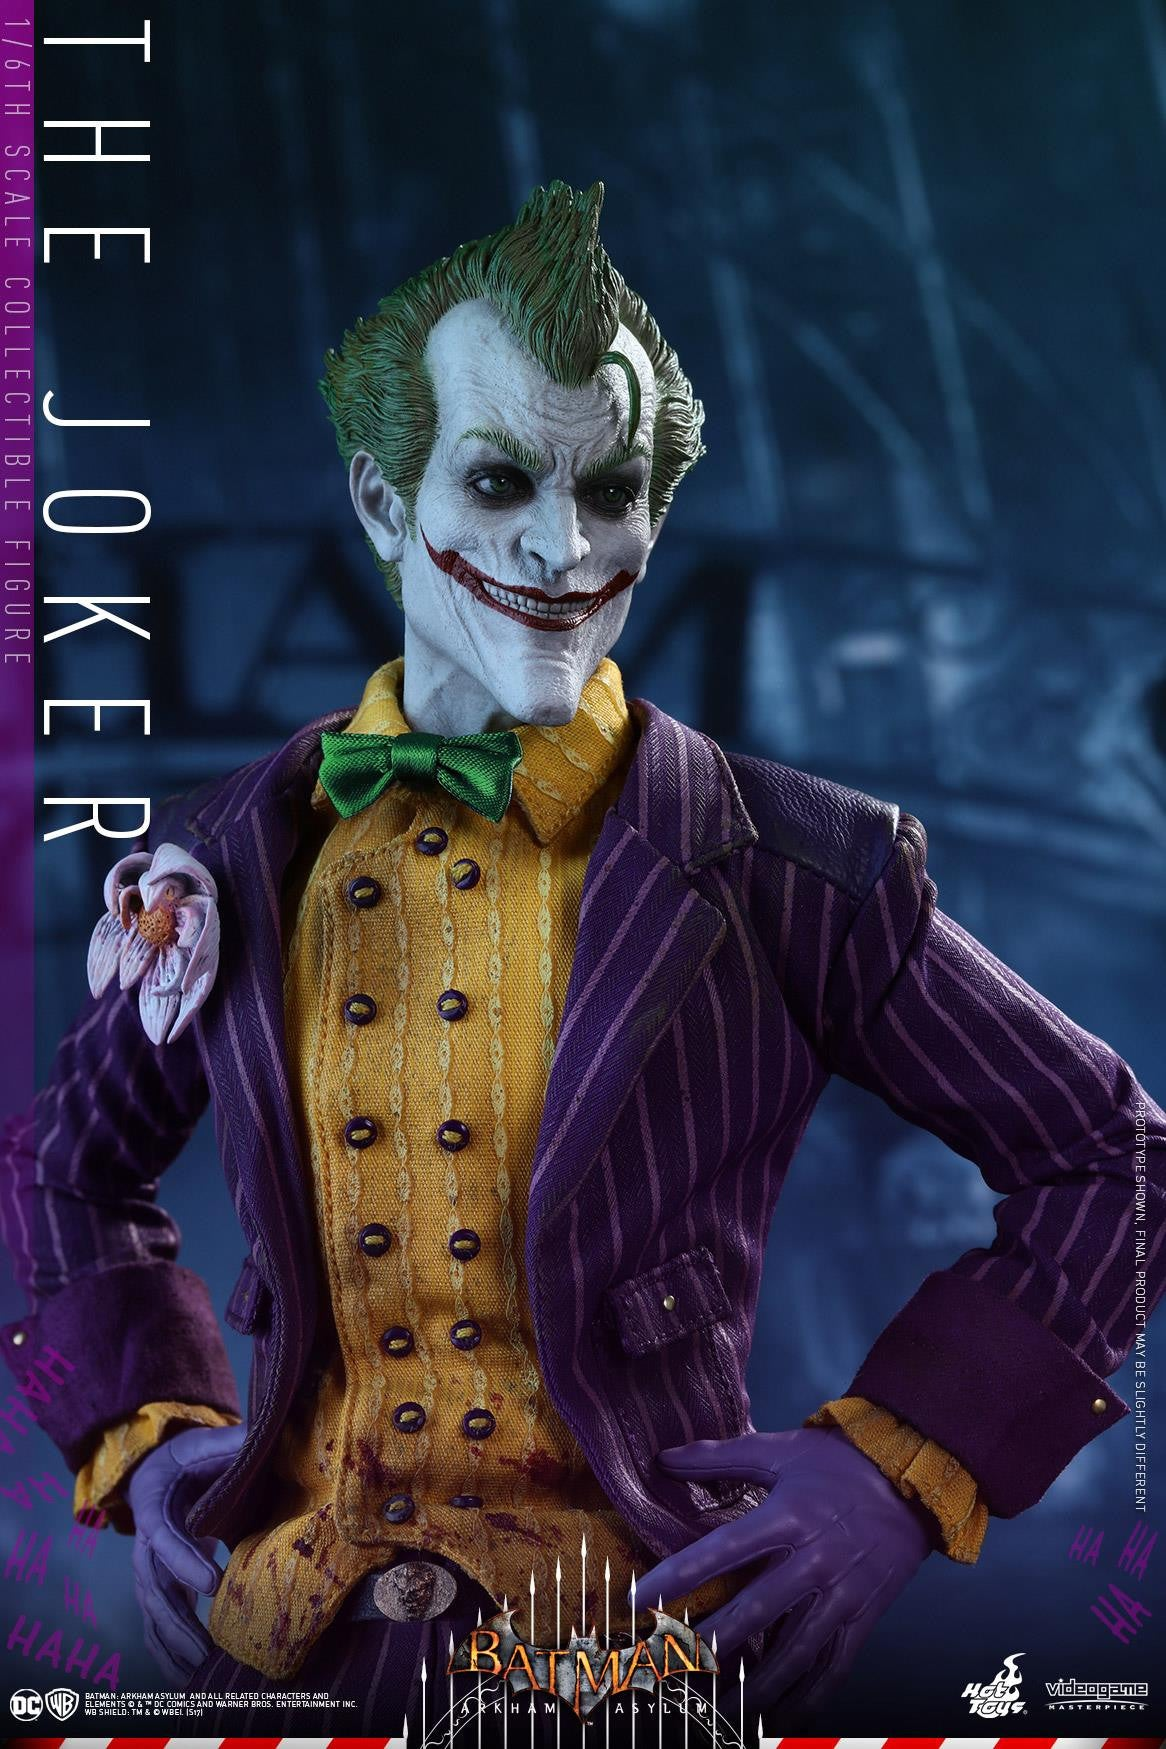 Hot Toys - VGM27 - Batman: Arkham Asylum - The Joker - Marvelous Toys - 15